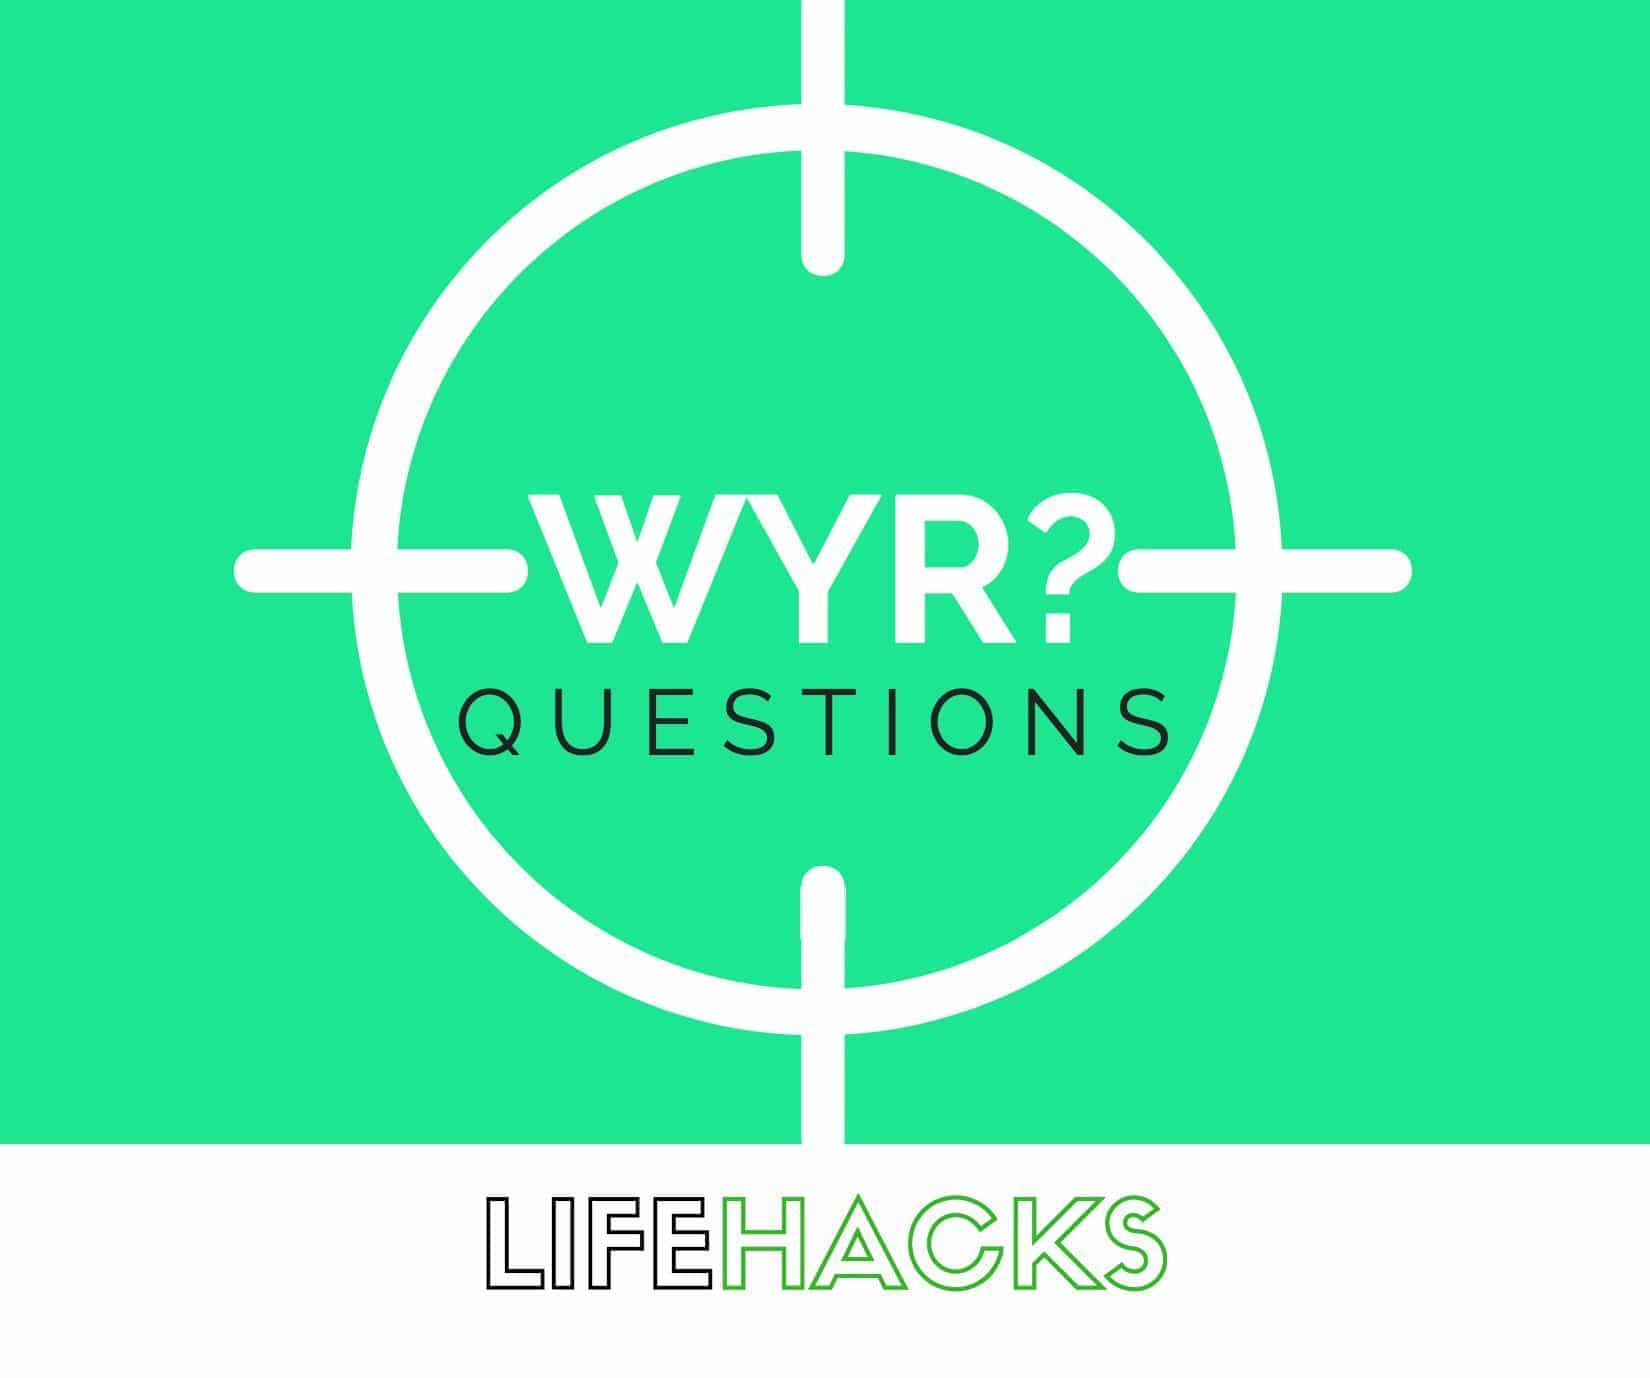 LifeHacks - Would you rather questions dirty